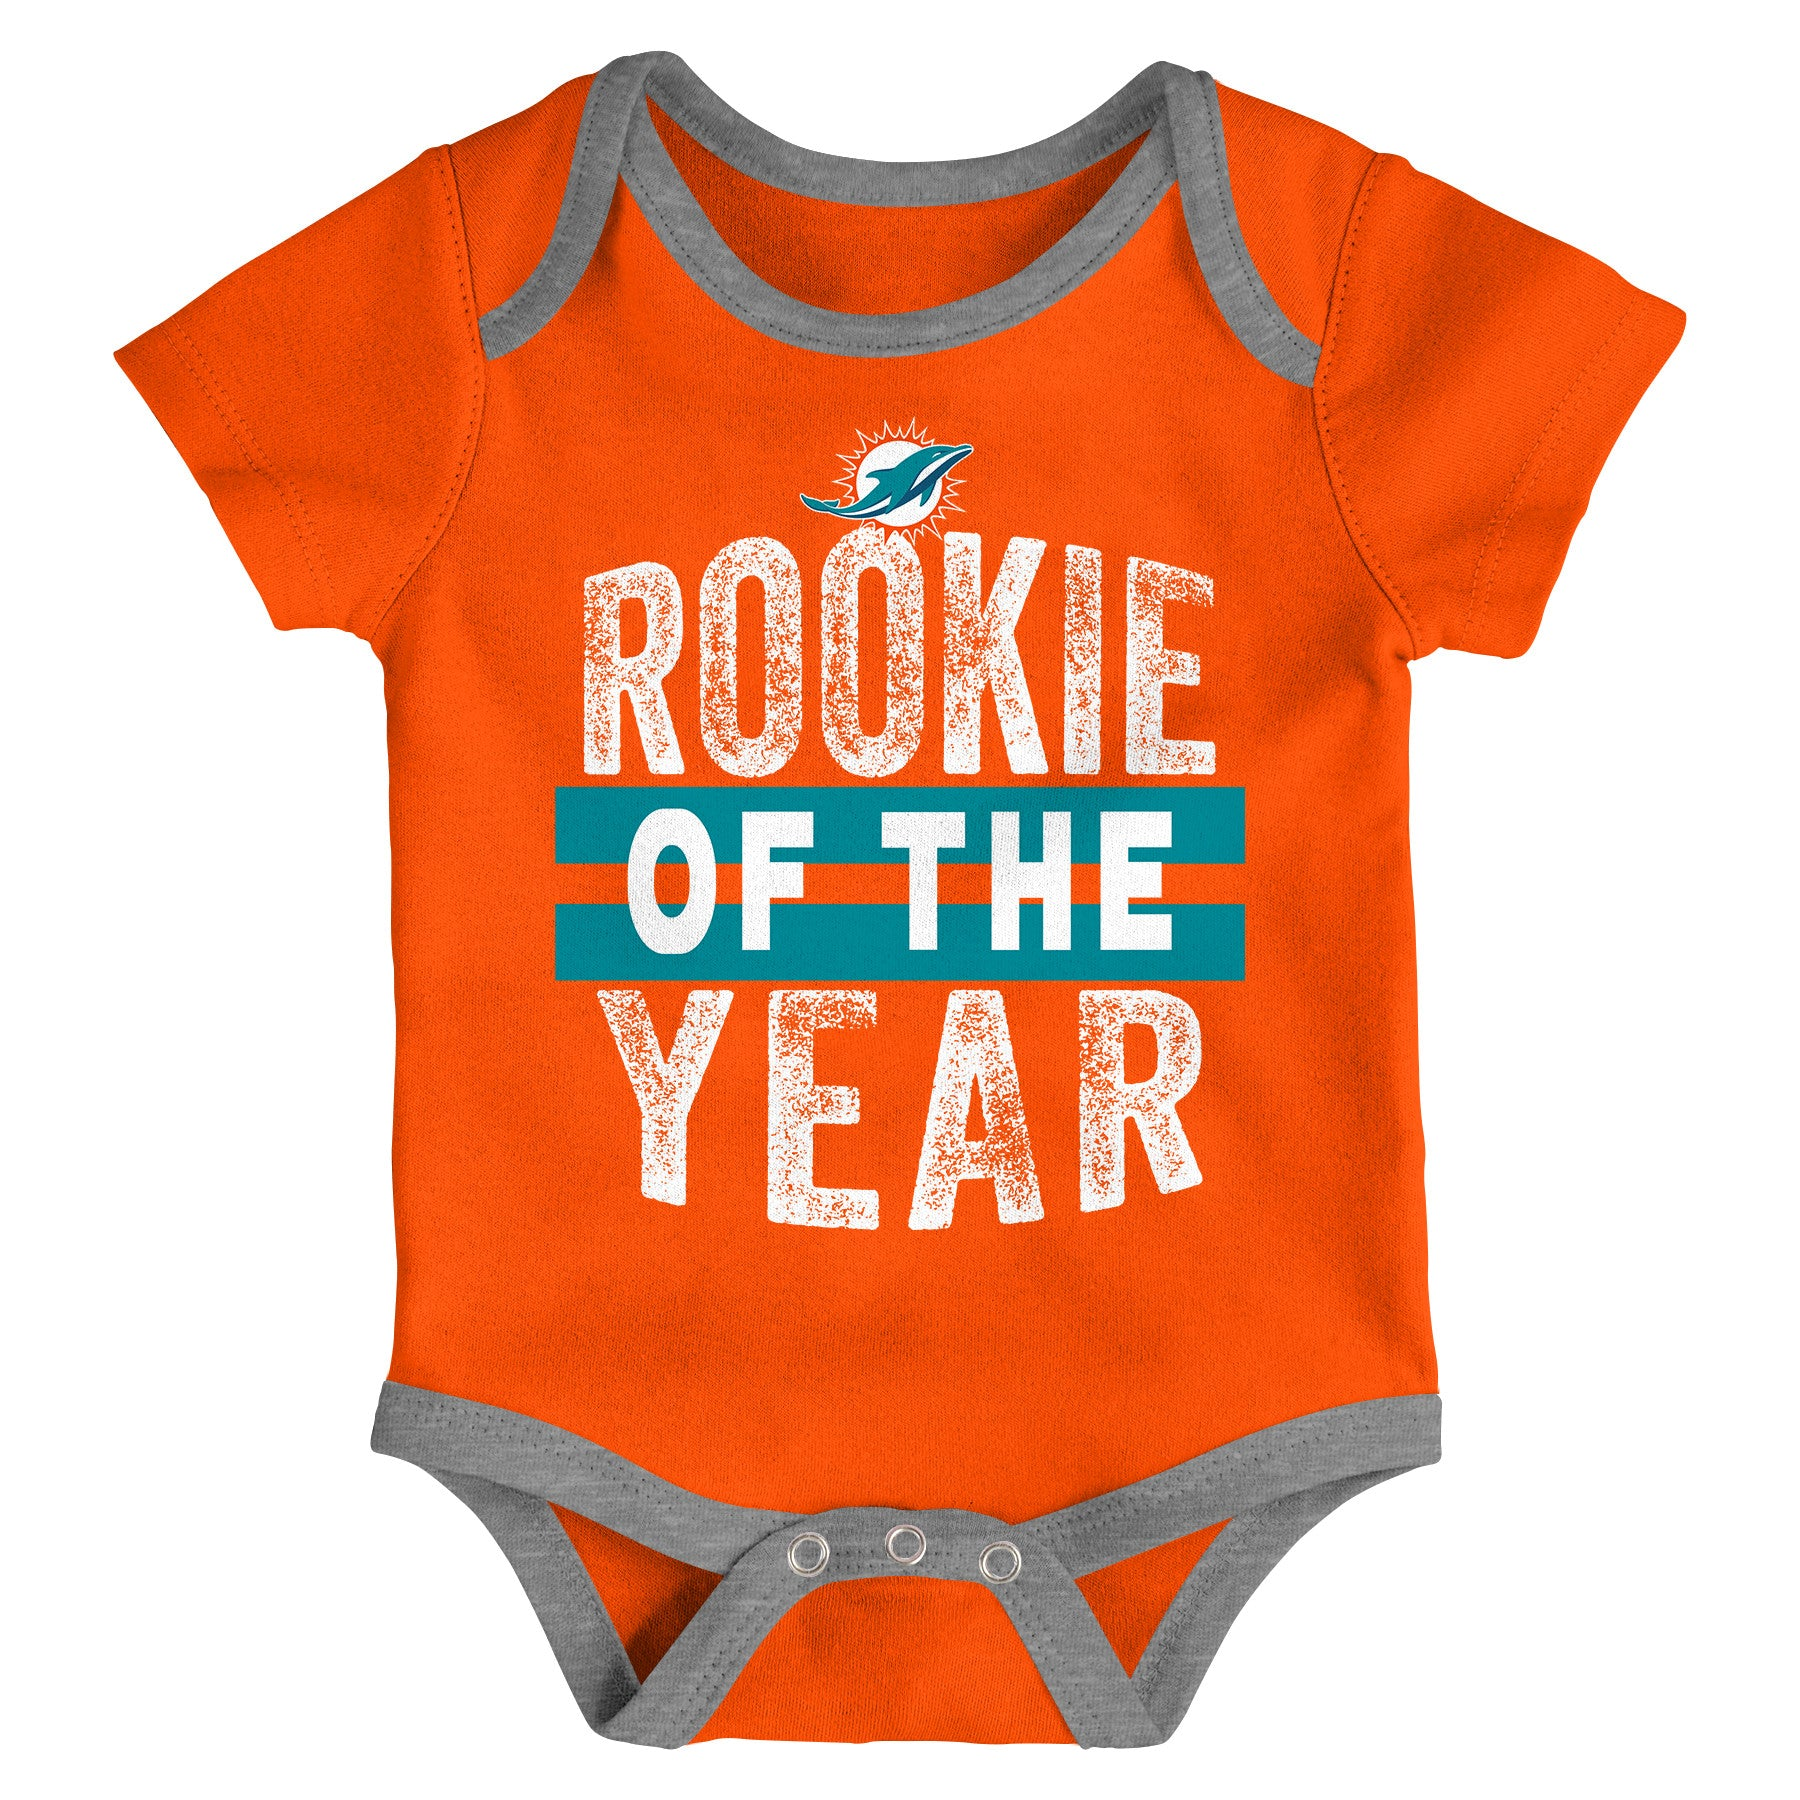 36912f49 Miami Dolphins Infant Rookie of the Year Onesie 3 Piece Set